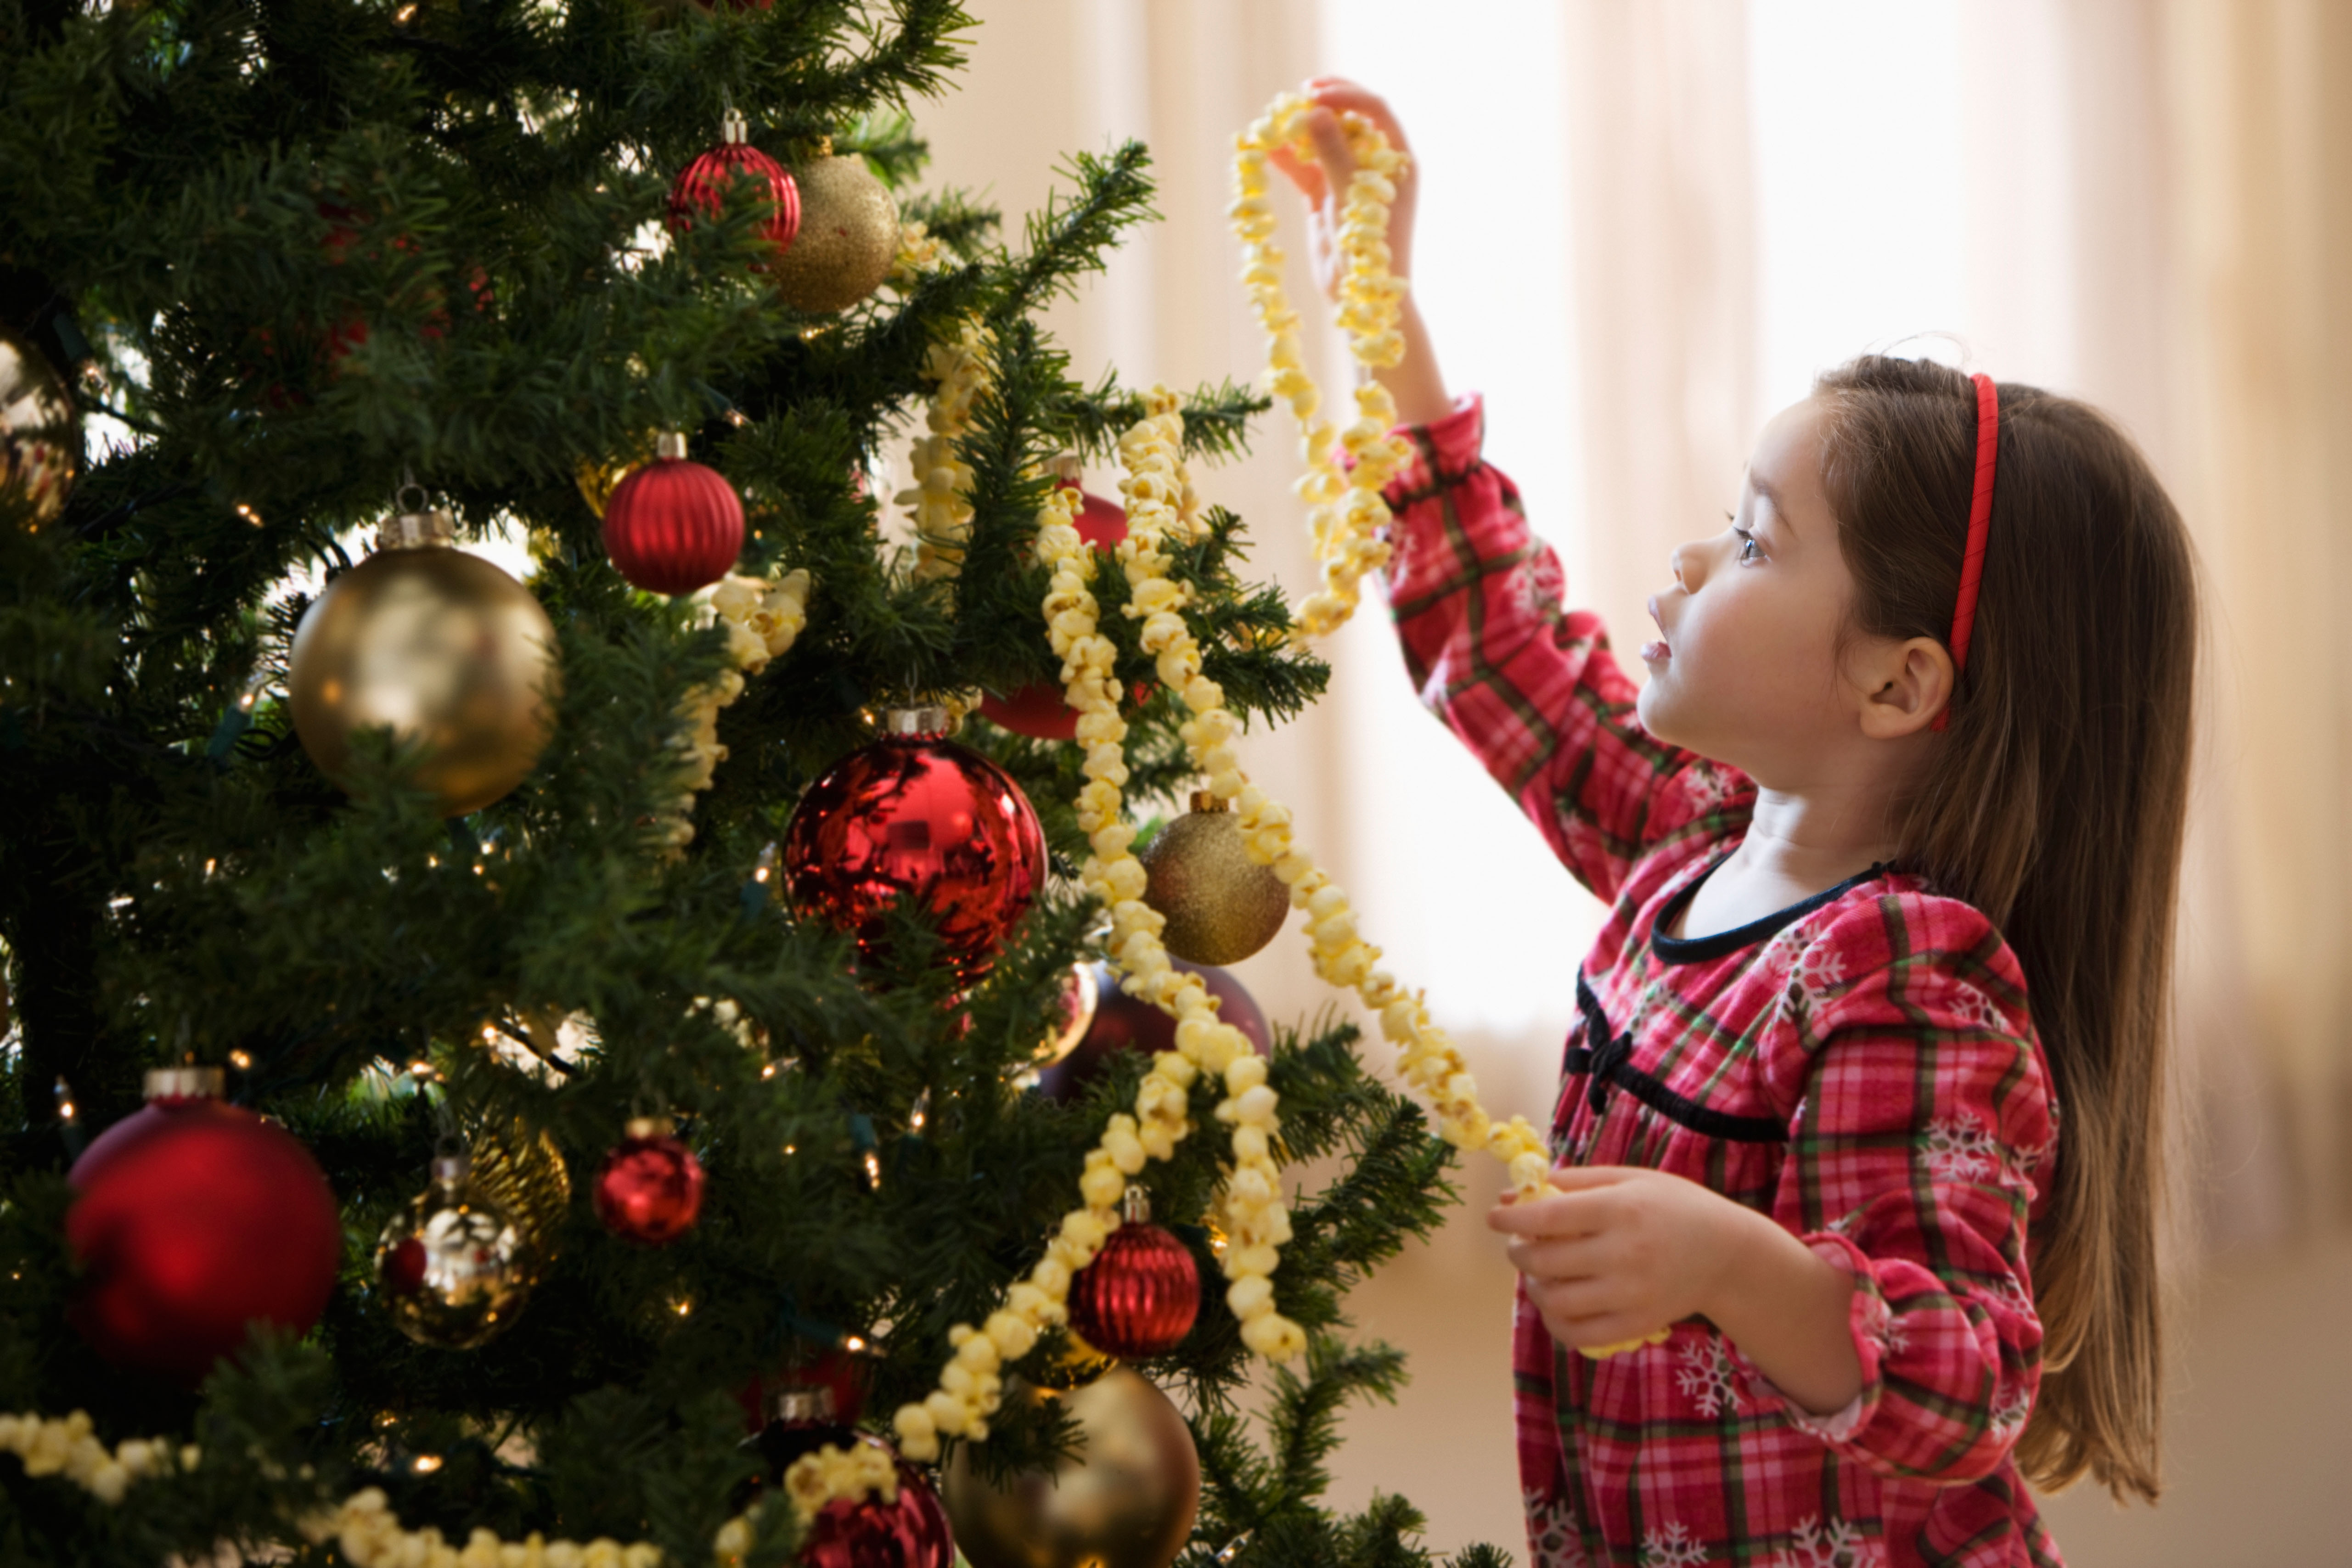 The Christmas story –why it's important to remember what today is about